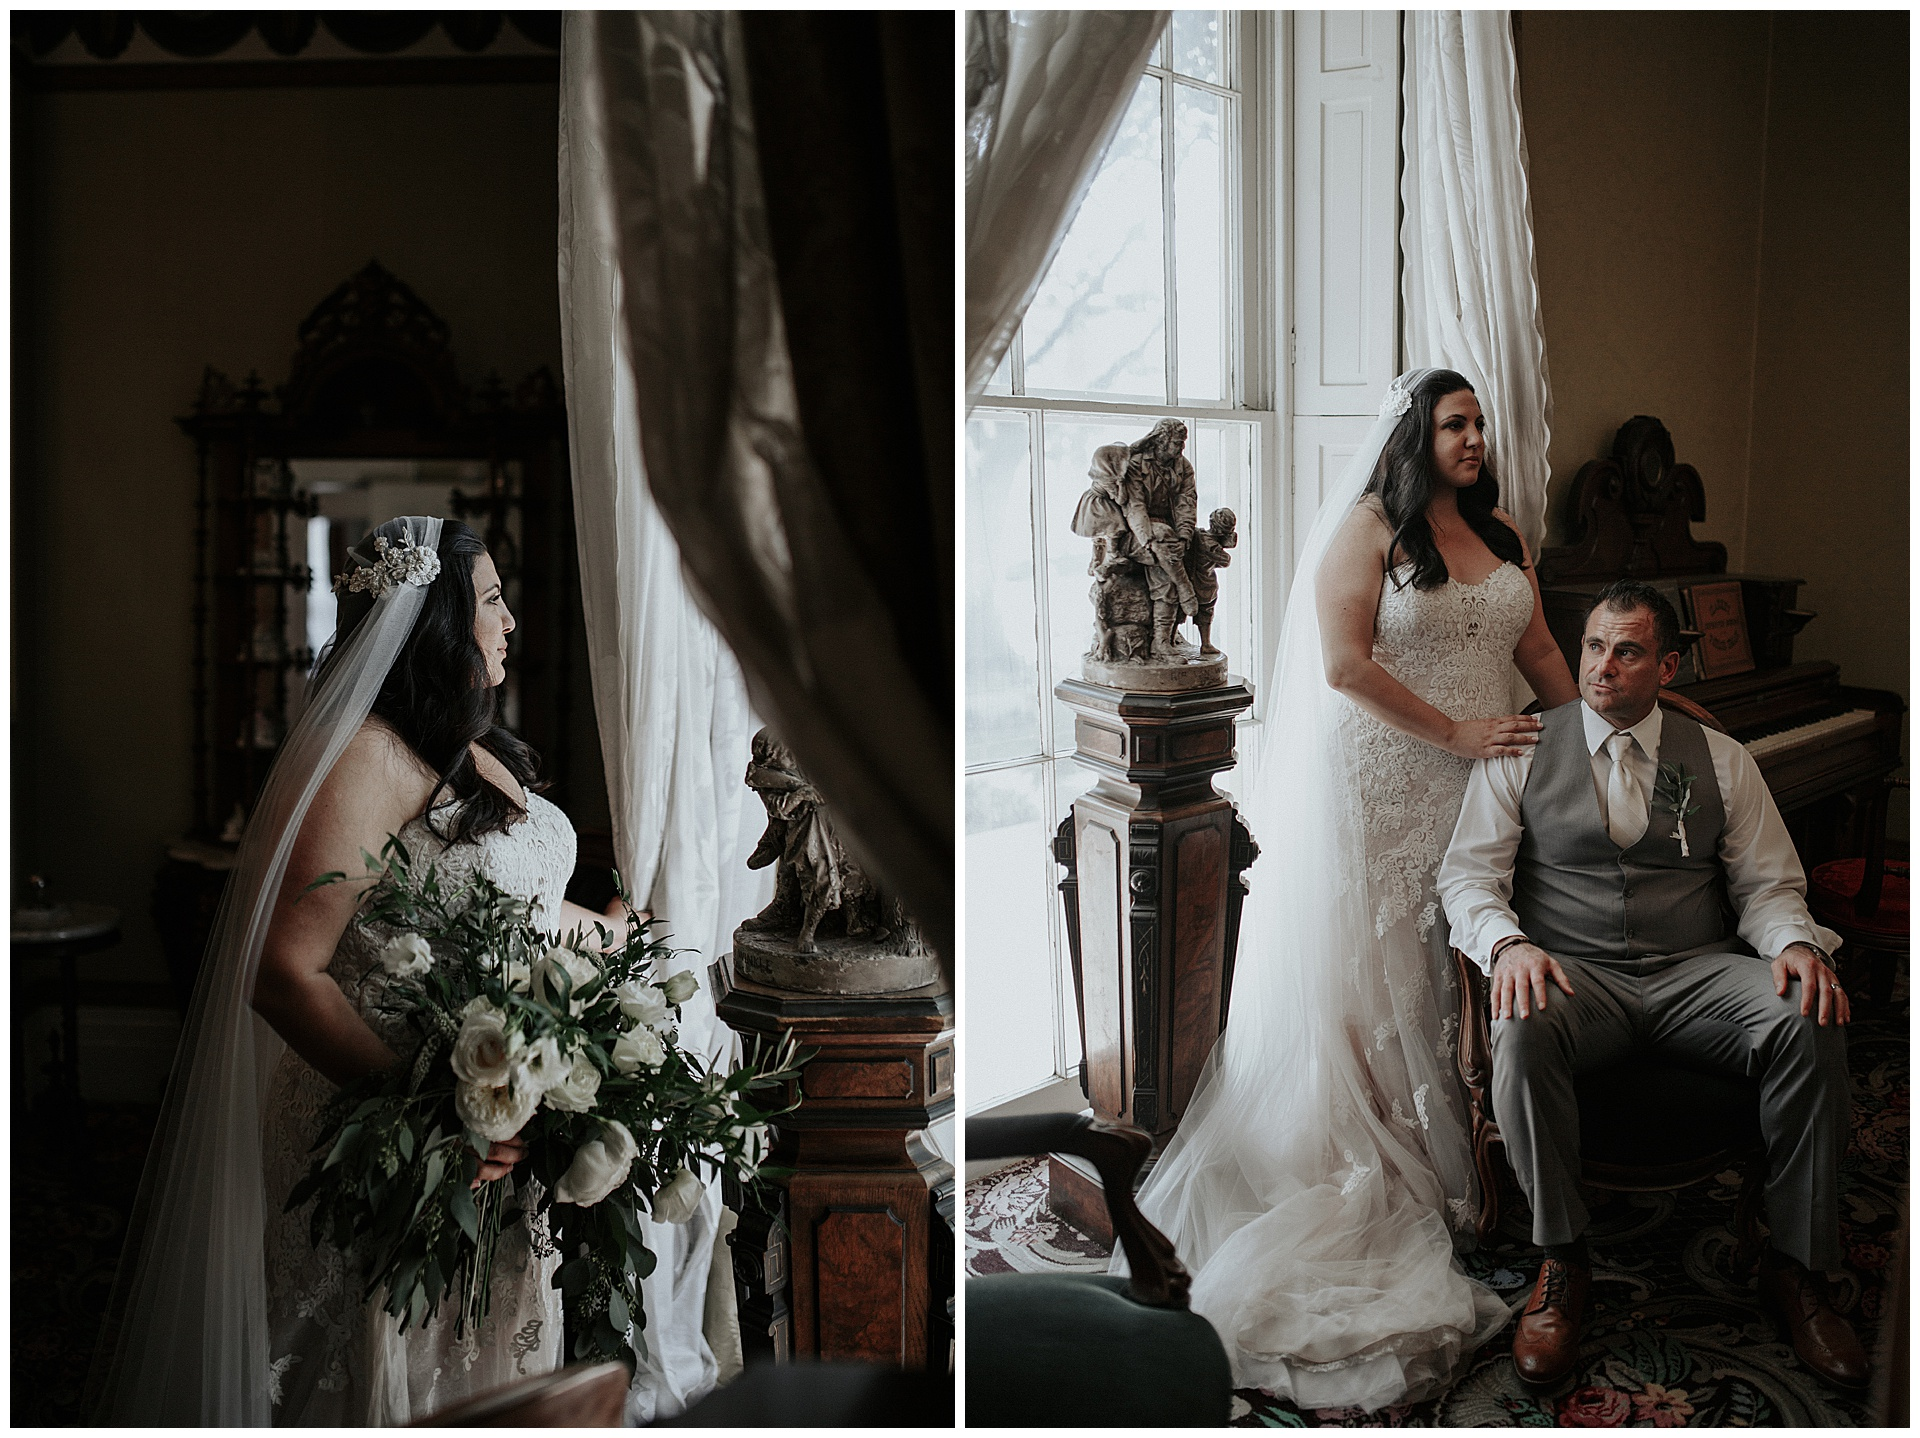 kelton house wedding columbus ohio_mia dimare photo49.jpg